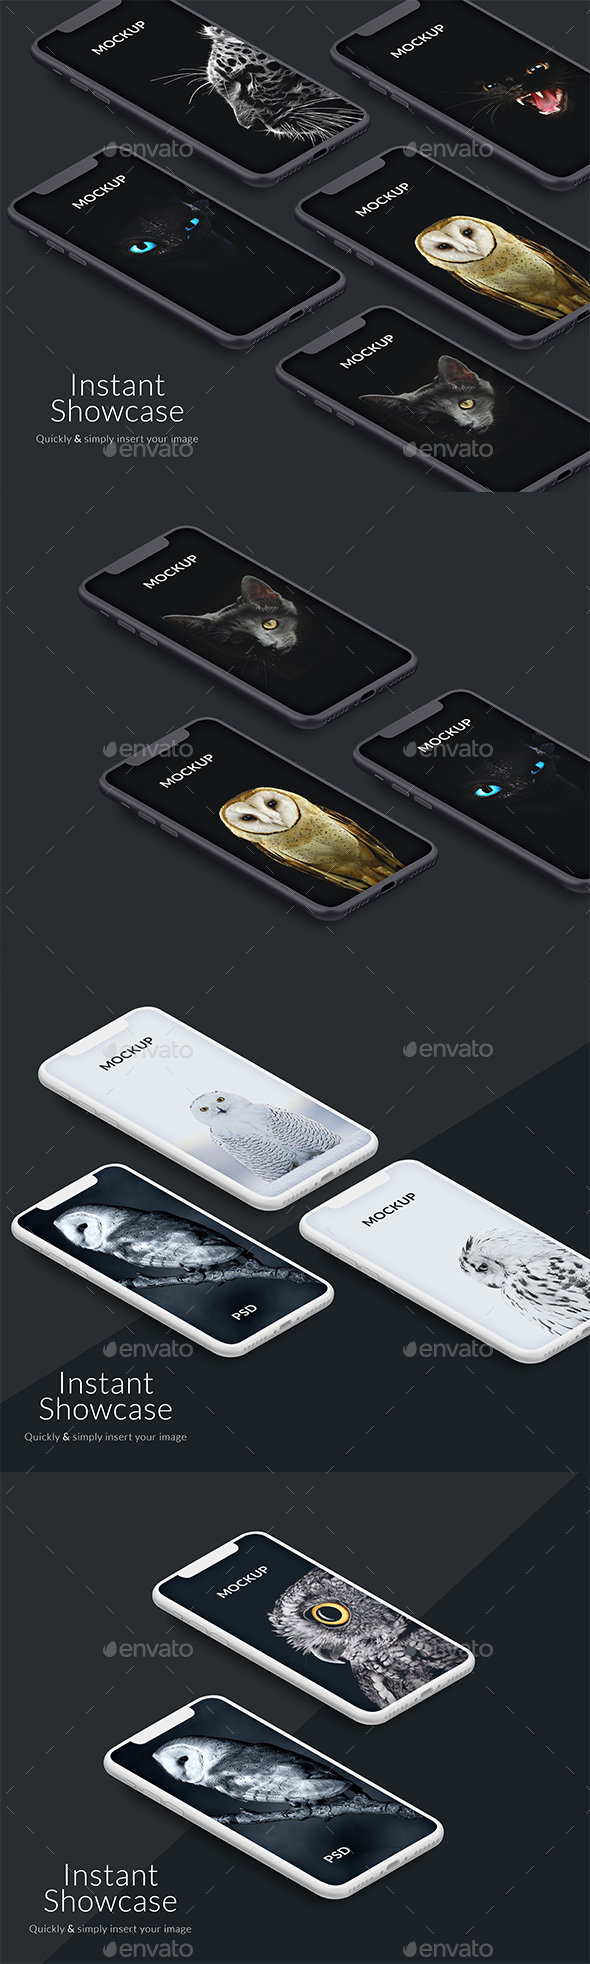 Perspective Iphone X Mockup - Product Mock-Ups Graphics